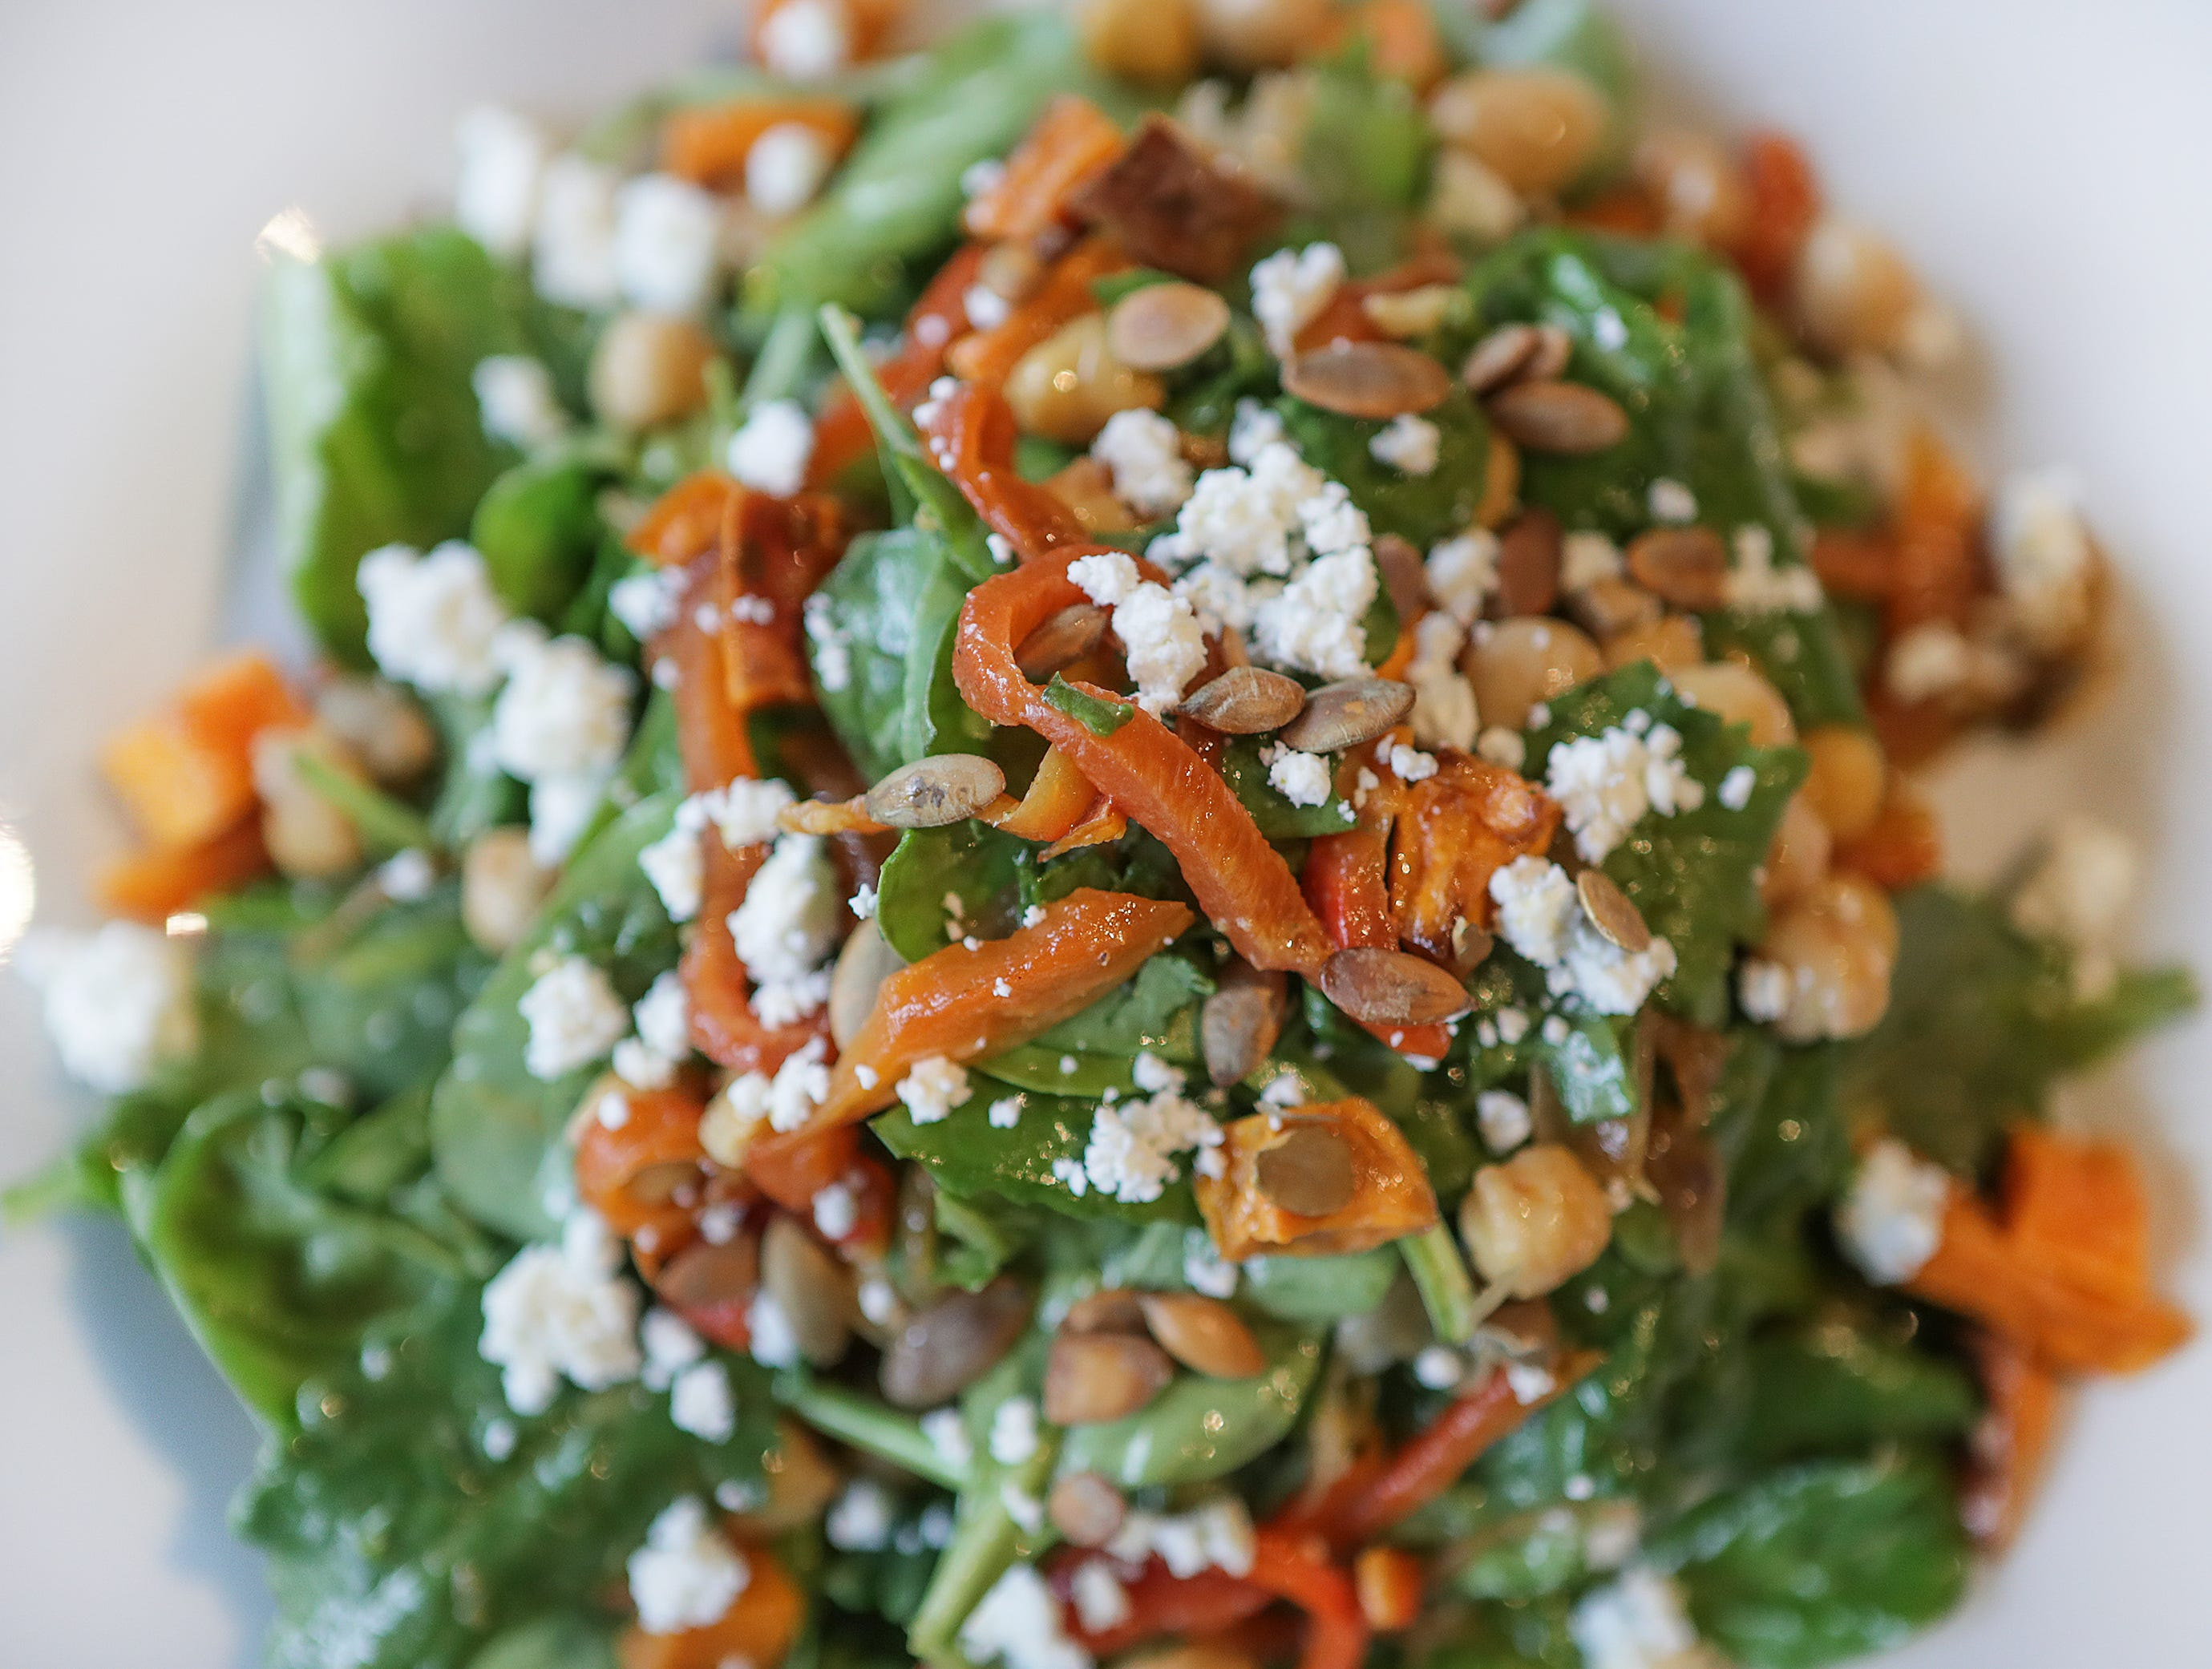 Seasonal Salad featuring salad greens, roasted sweet potatoes, spiced chick peas, goat cheese, toasted pumpkin seeds in herb vinaigrette at Farm To Fork in Portland.